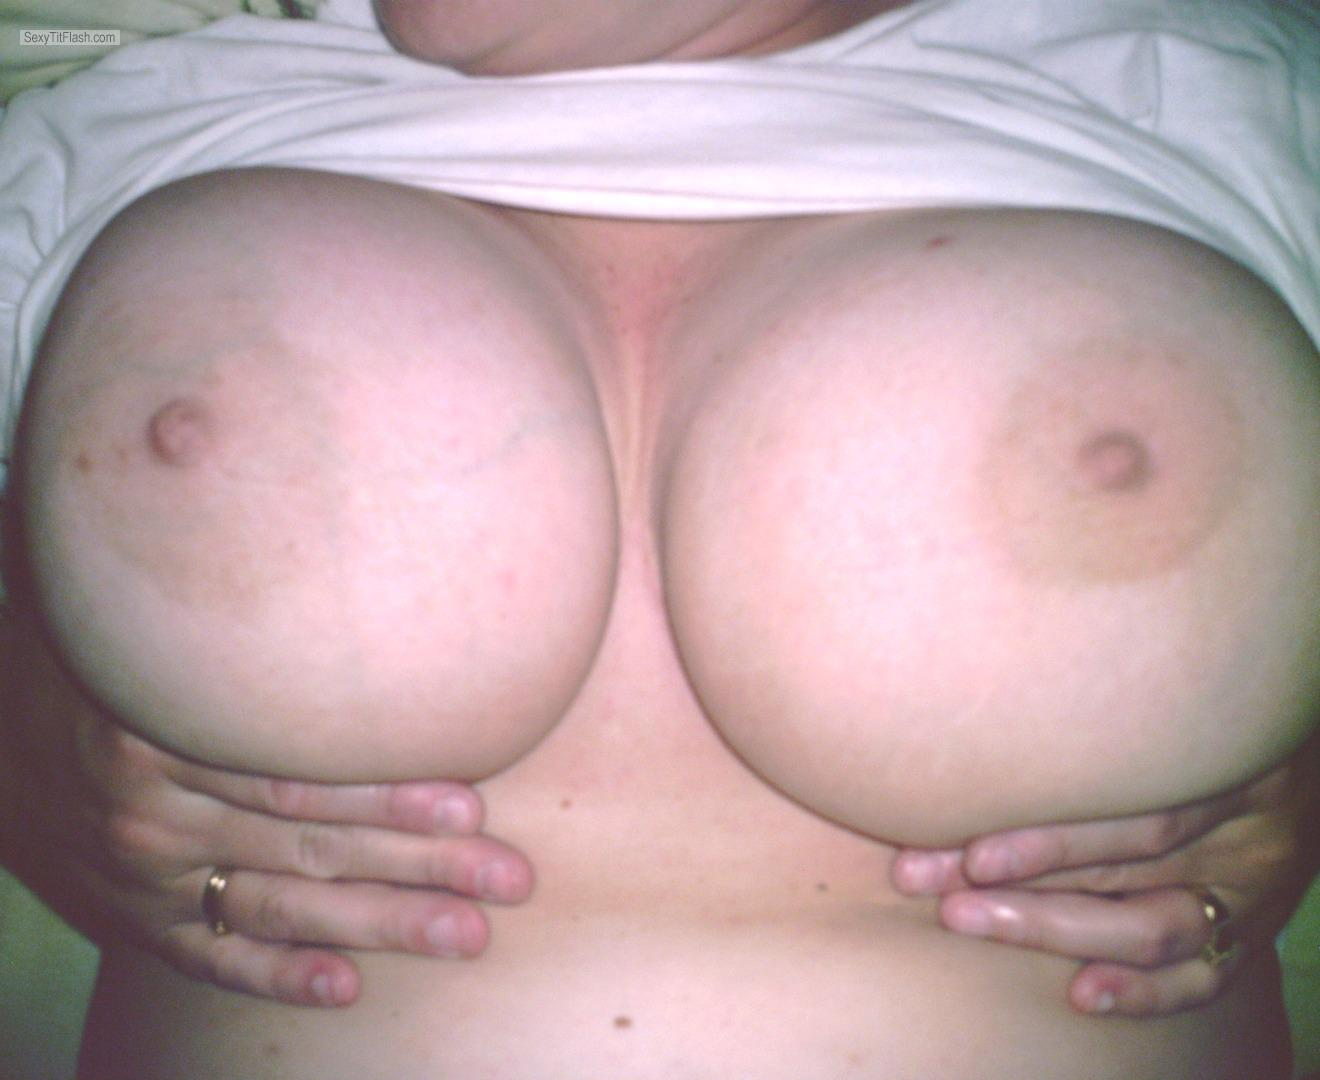 Very big Tits Of My Ex-Wife JB'S BIG BOOBs